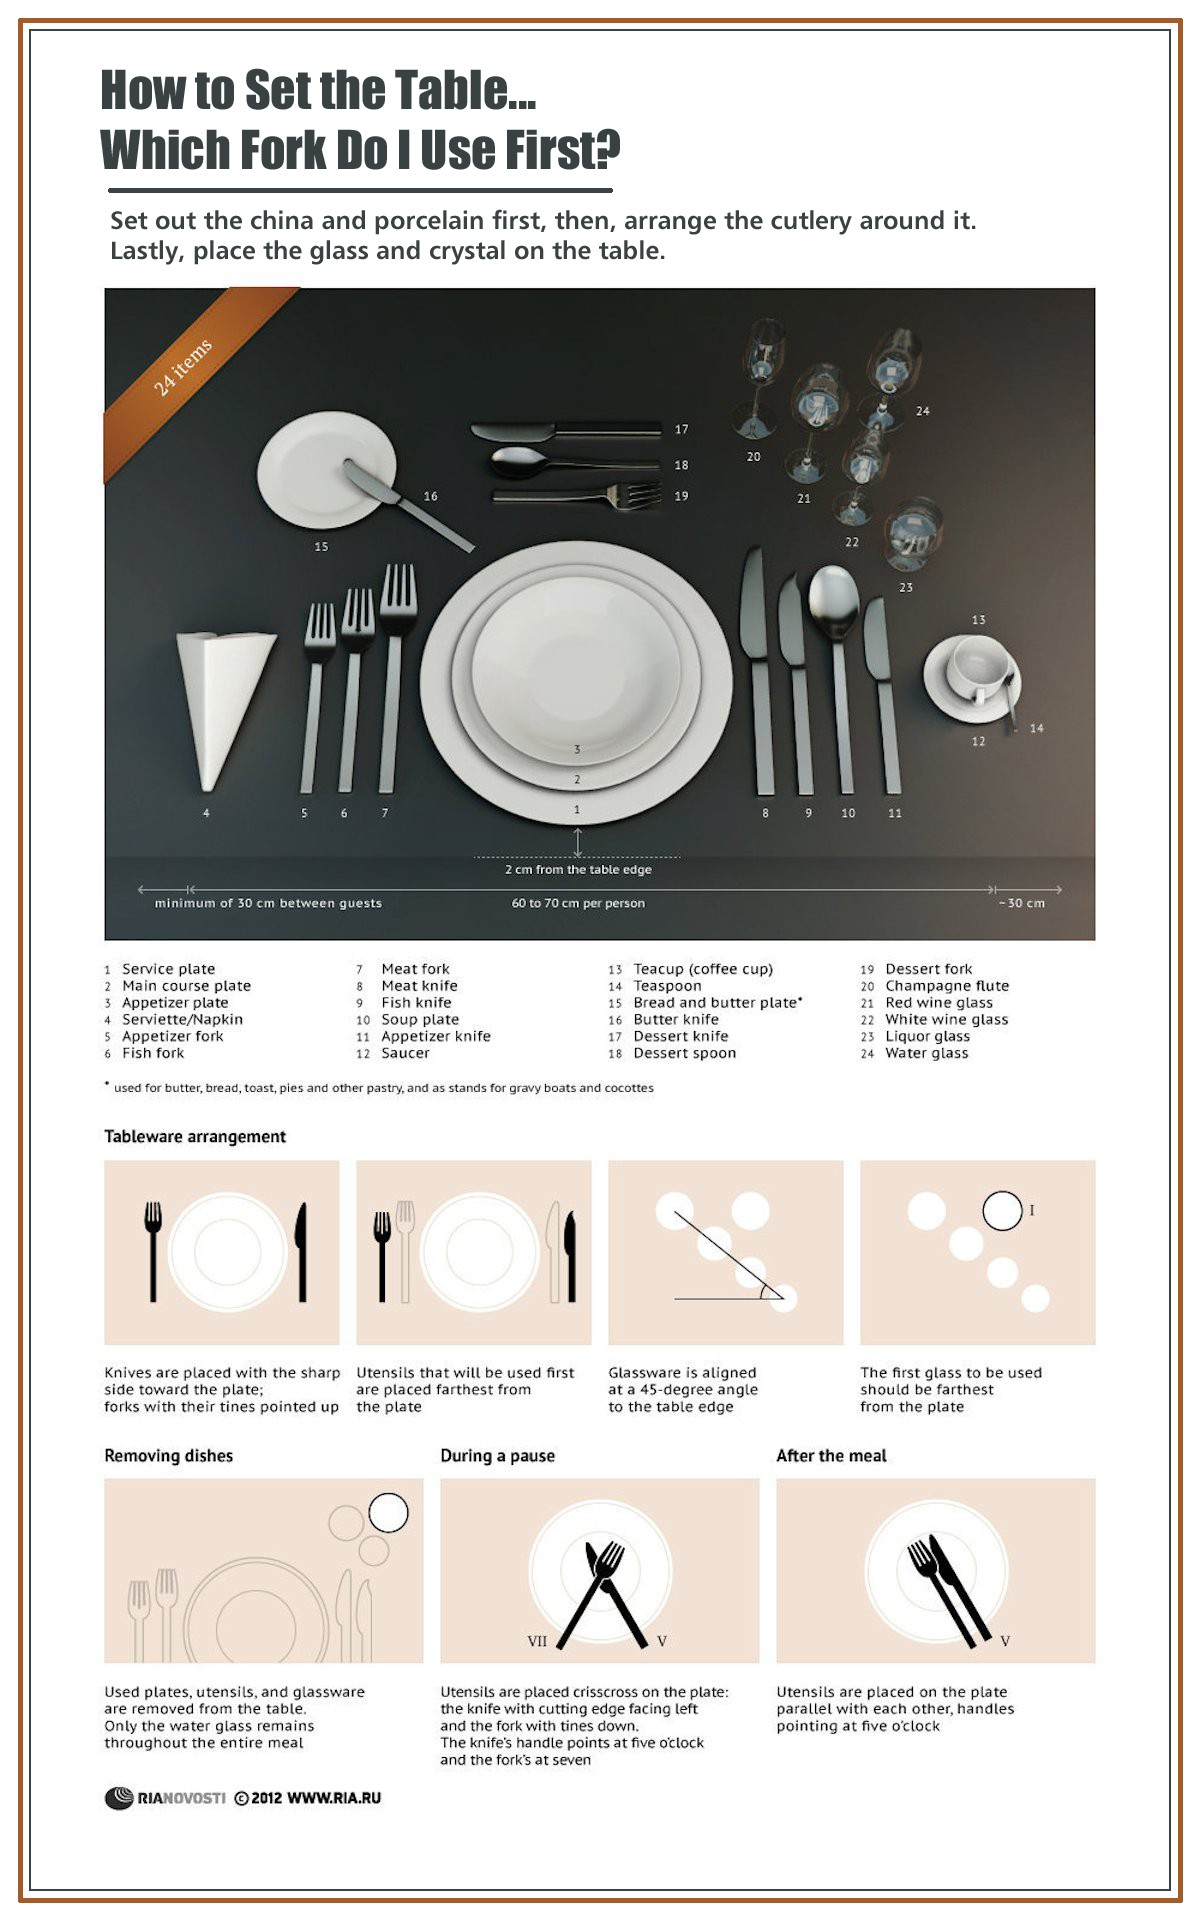 00 ria novosti infographics how to set the table which fork do i use first 2012 voices from. Black Bedroom Furniture Sets. Home Design Ideas